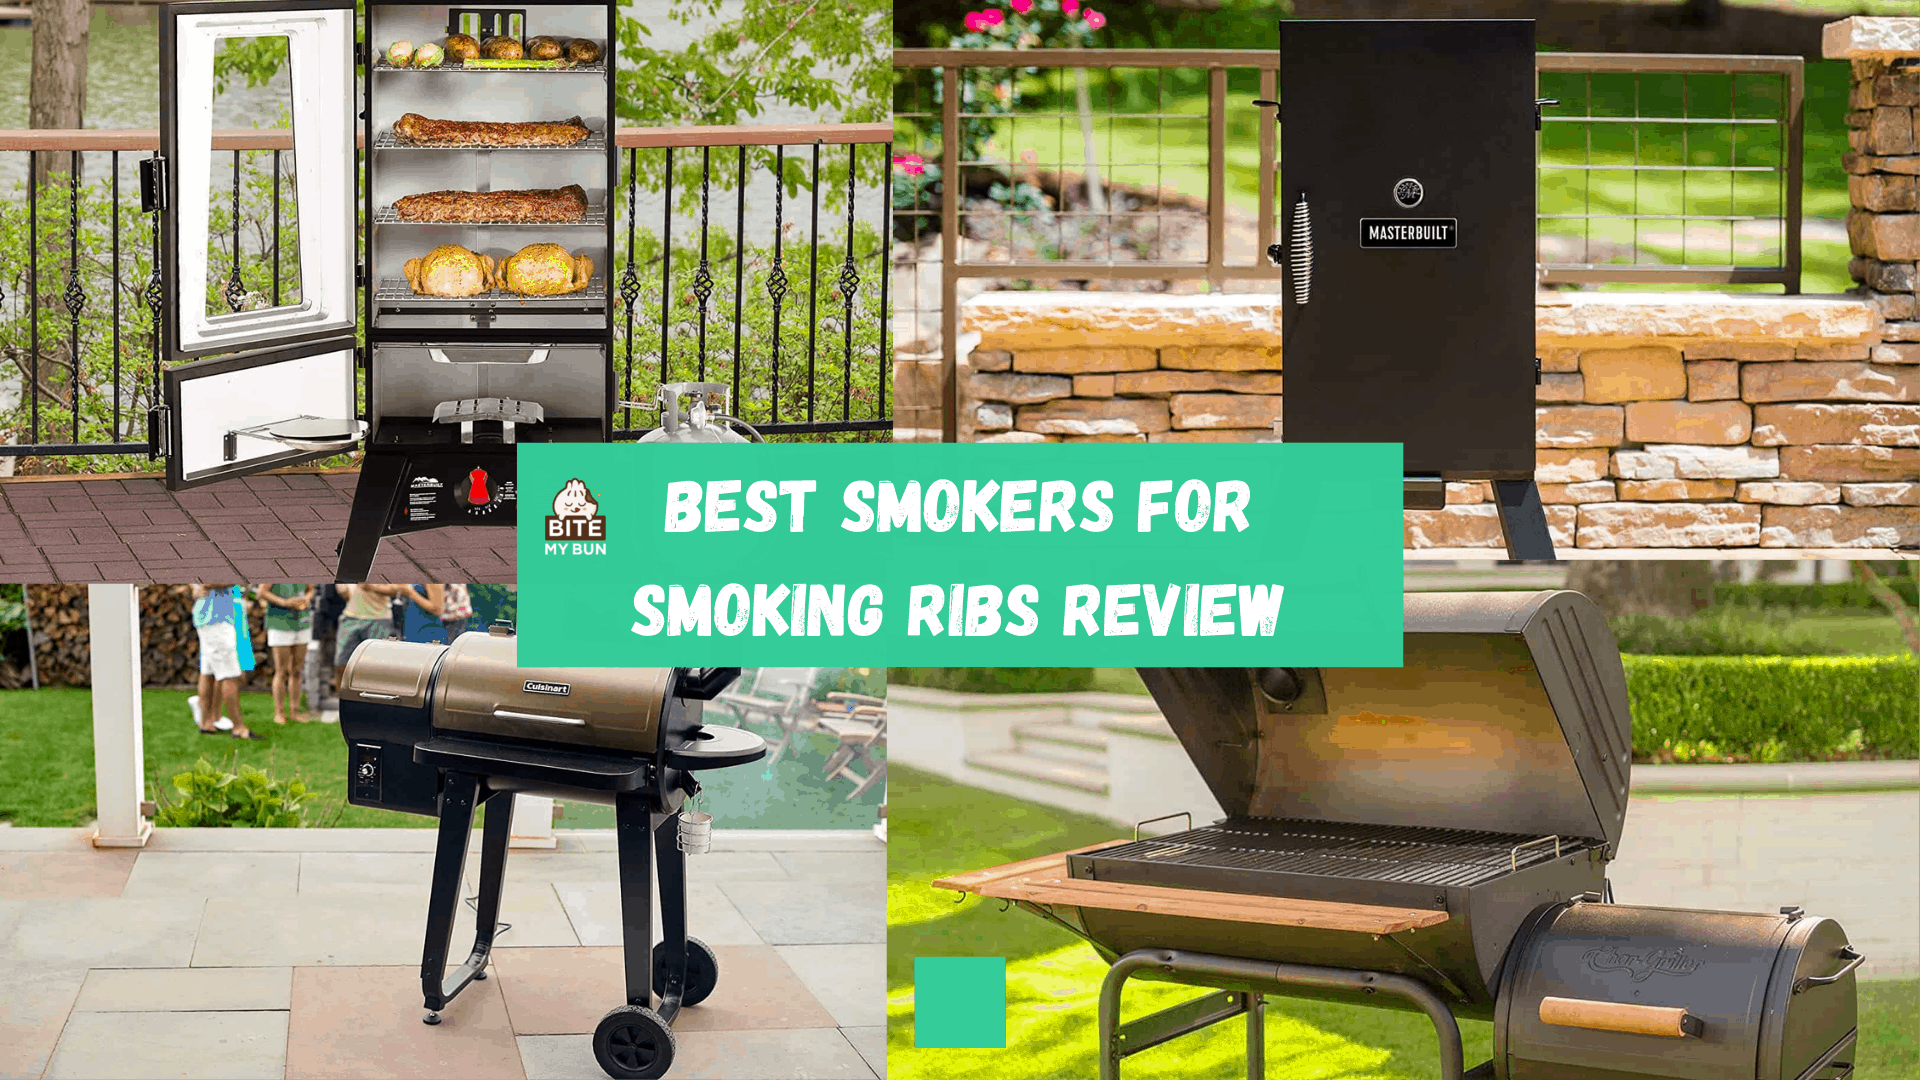 Best smoker for ribs | Full buyers guide for slow 'n low smoking